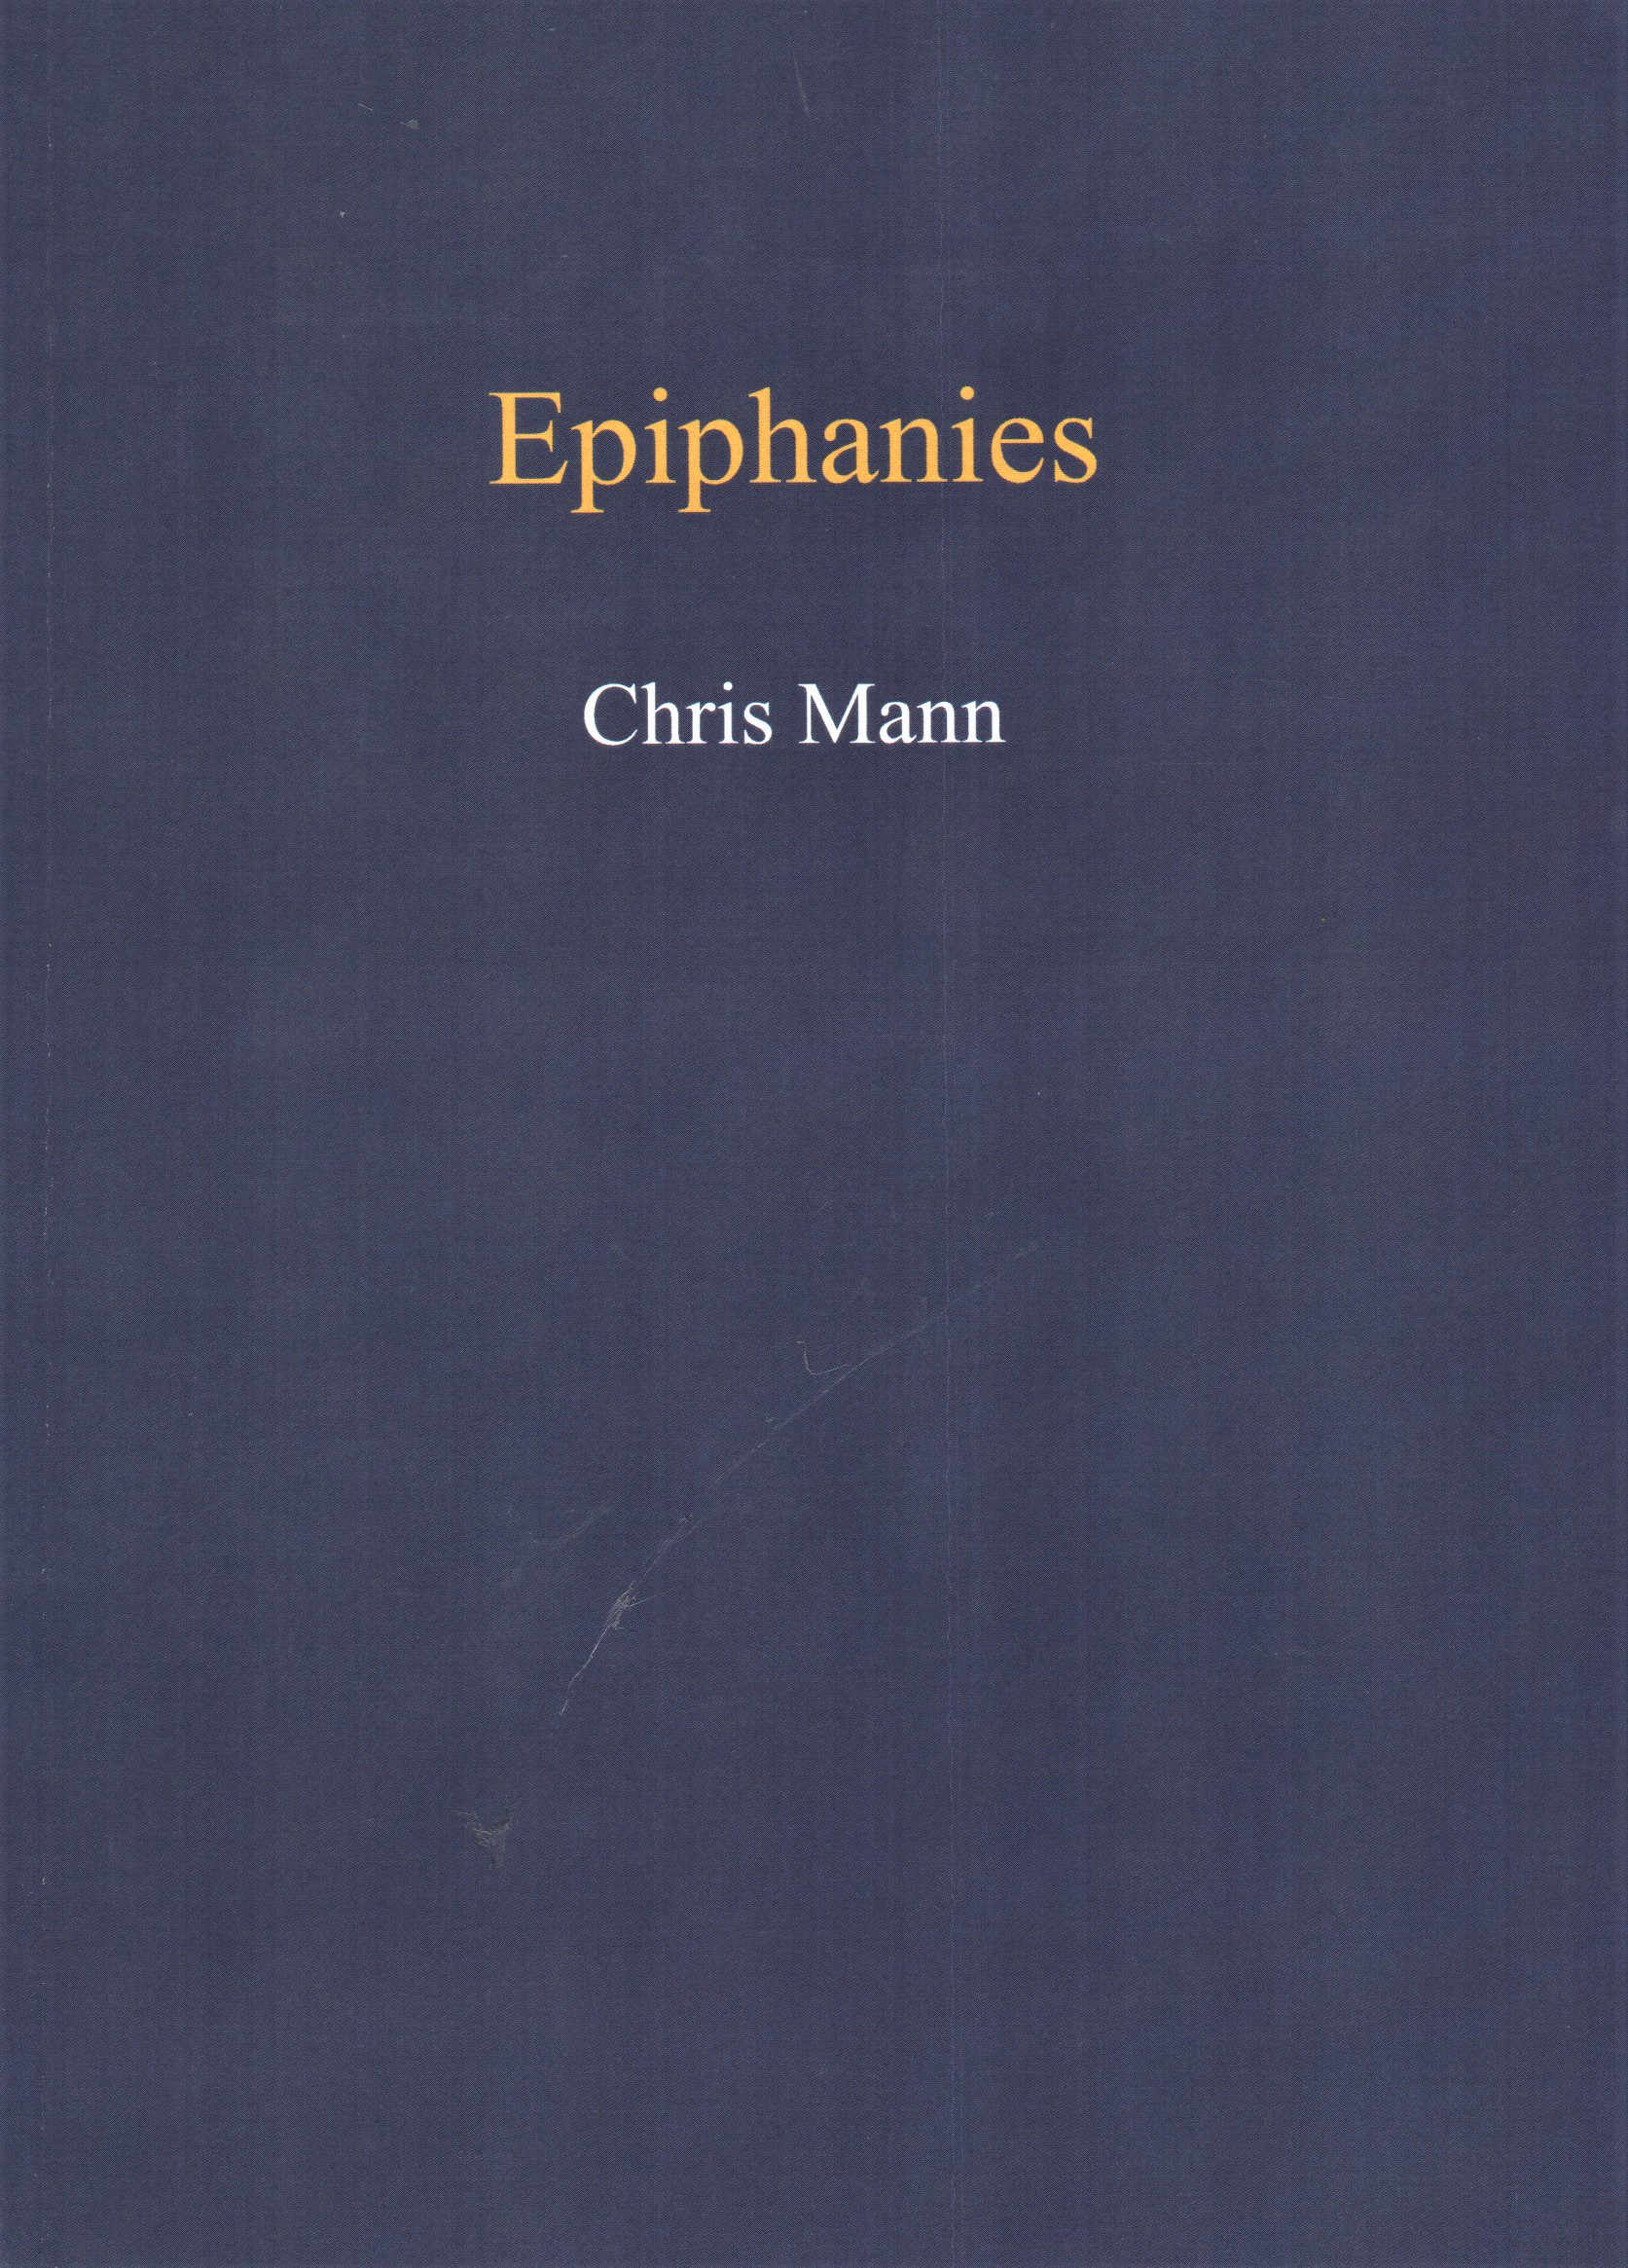 Epiphanies by Chris Mann